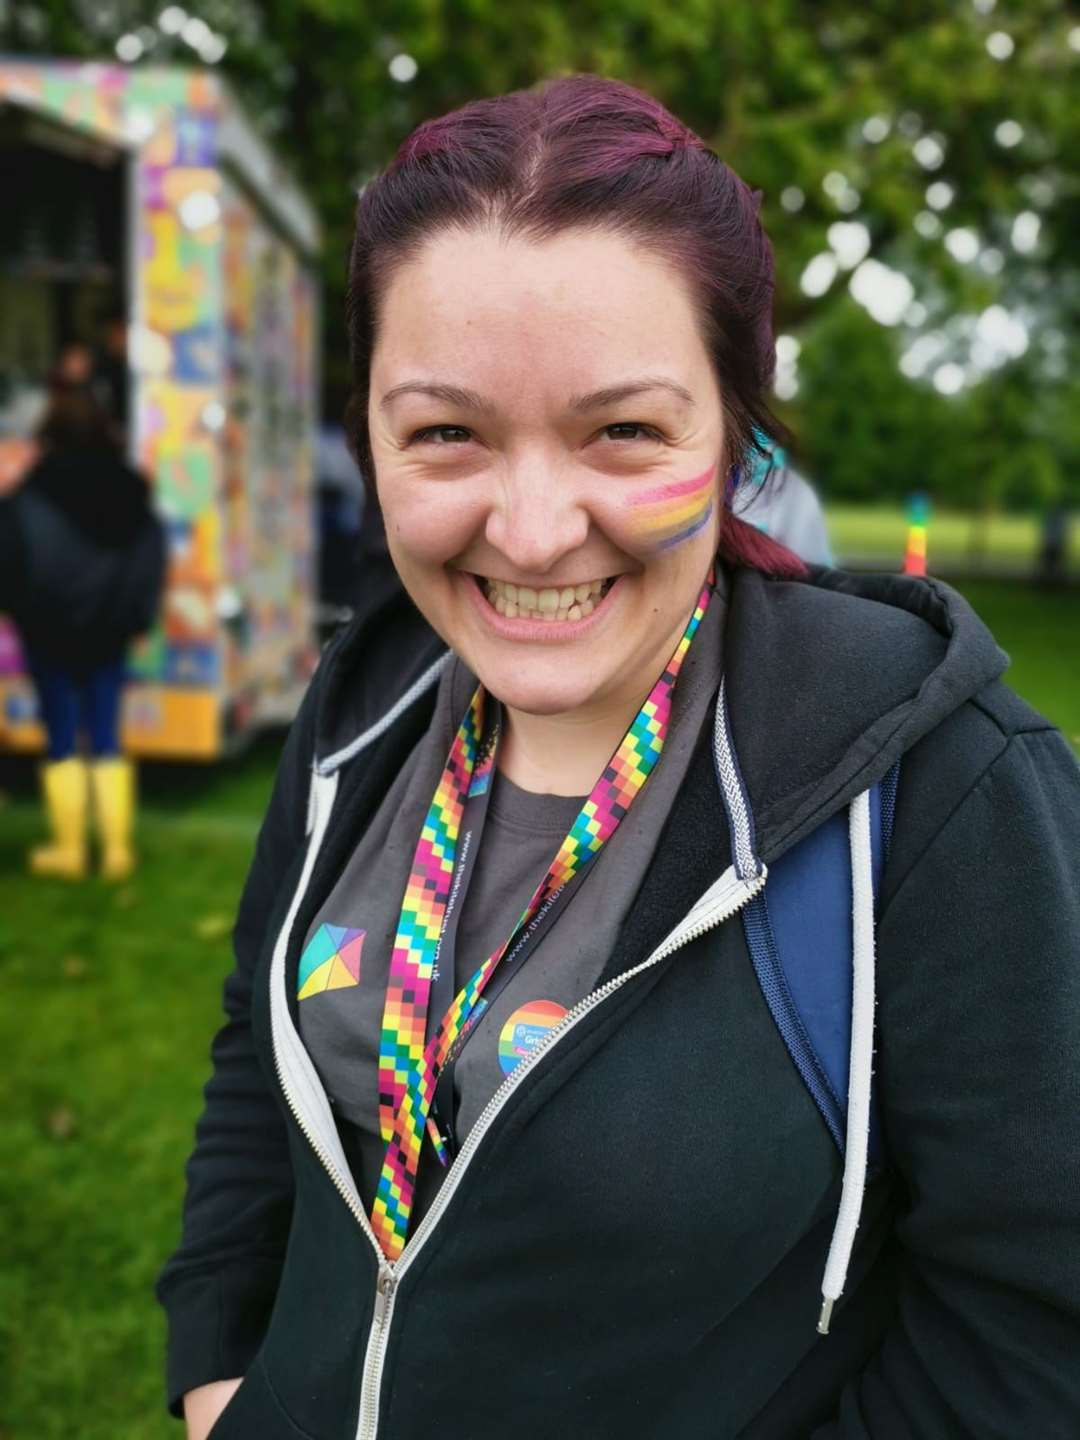 Rosie Woolgar has been nominated for the UK's largest diversity awards.